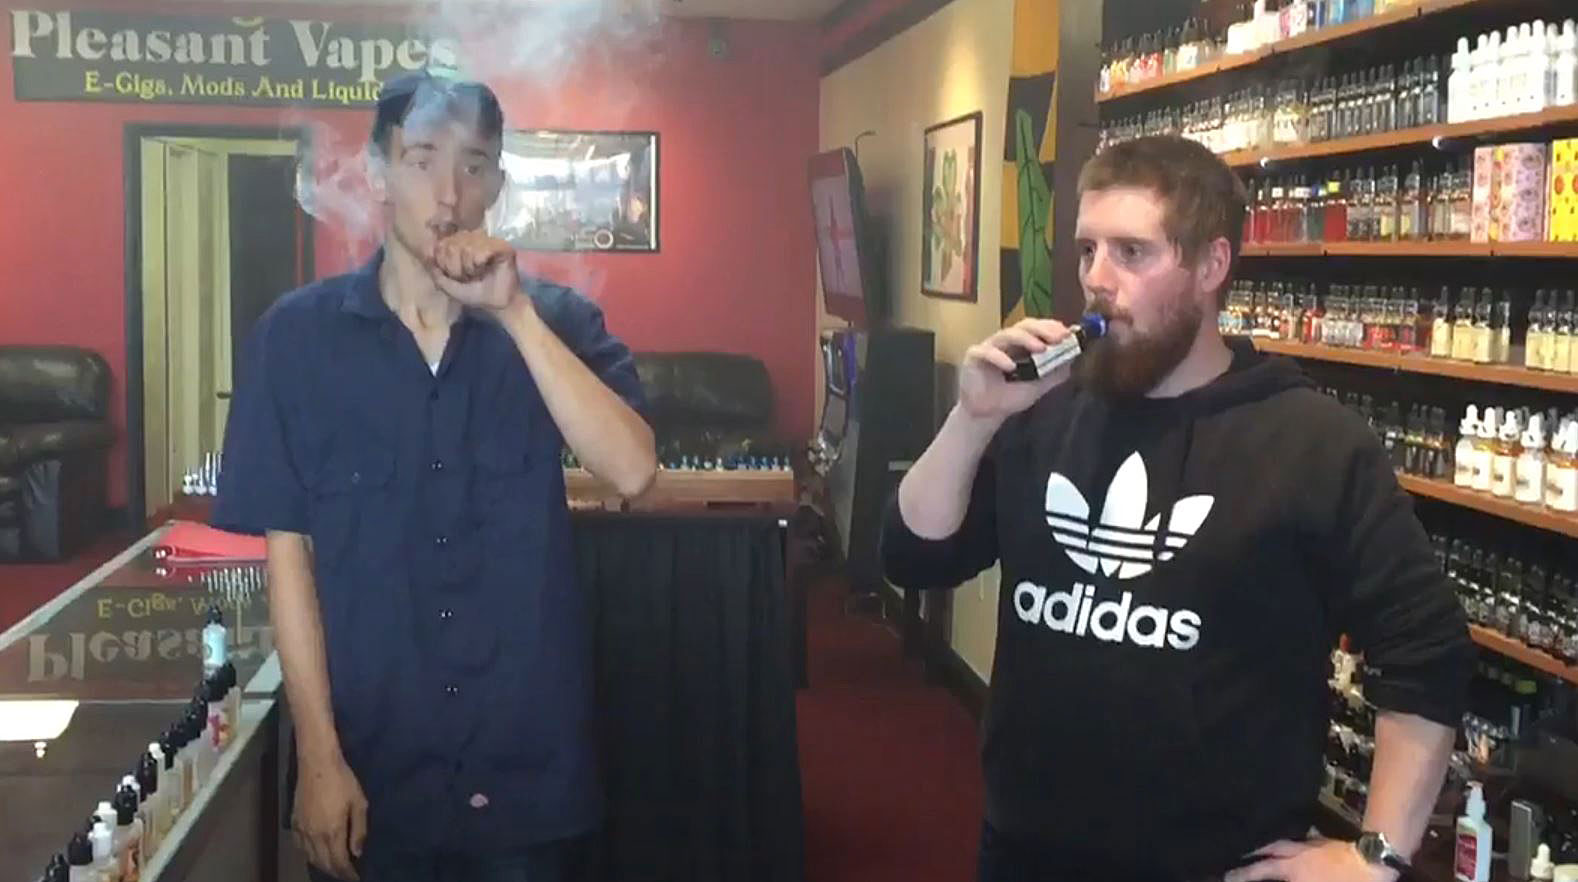 Maryland vape shop weighs in on new FDA rules